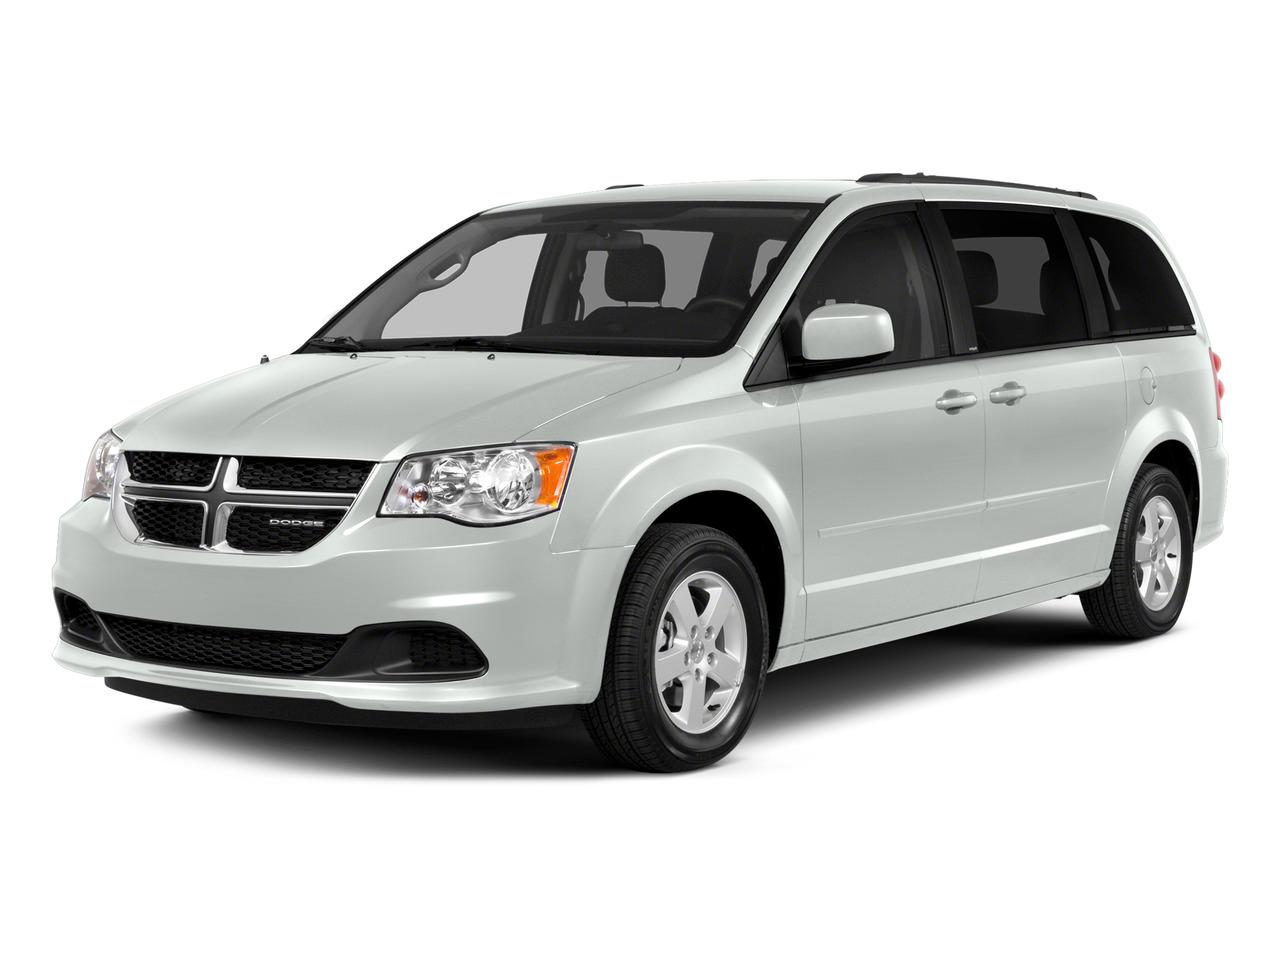 2015 Dodge Grand Caravan Vehicle Photo in Norwich, NY 13815